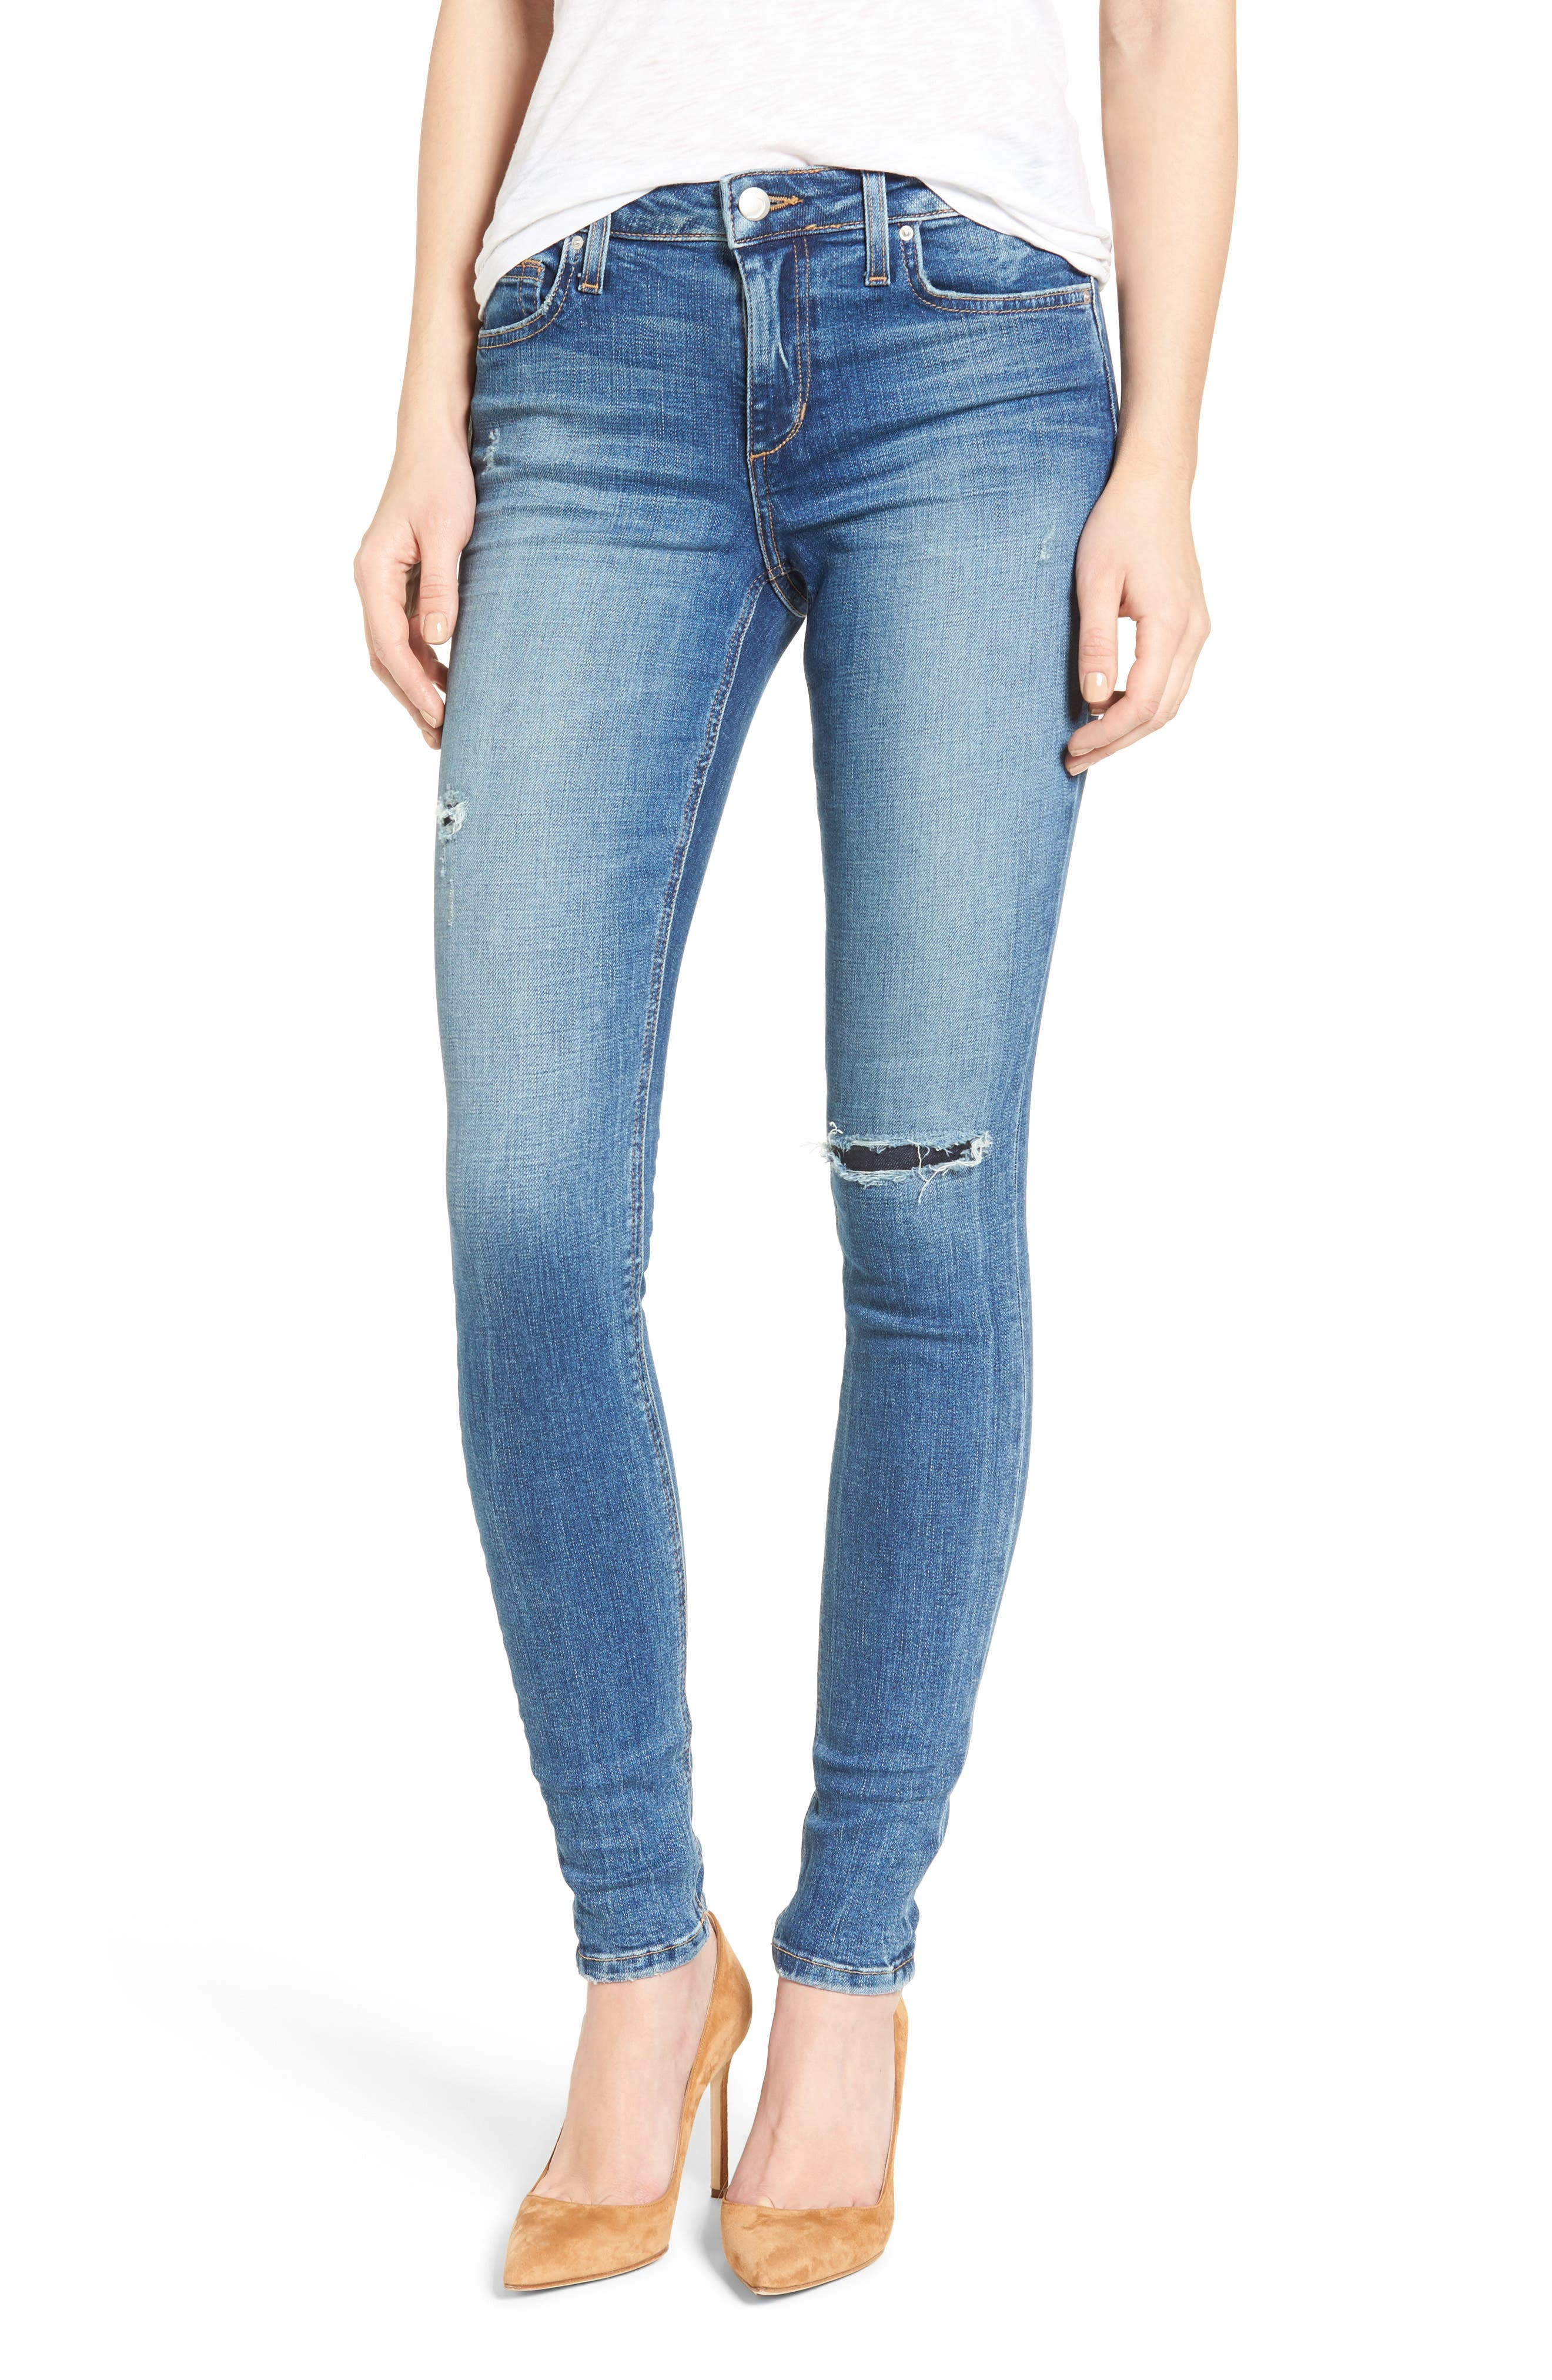 Icon Skinny Jeans,                             Main thumbnail 1, color,                             410